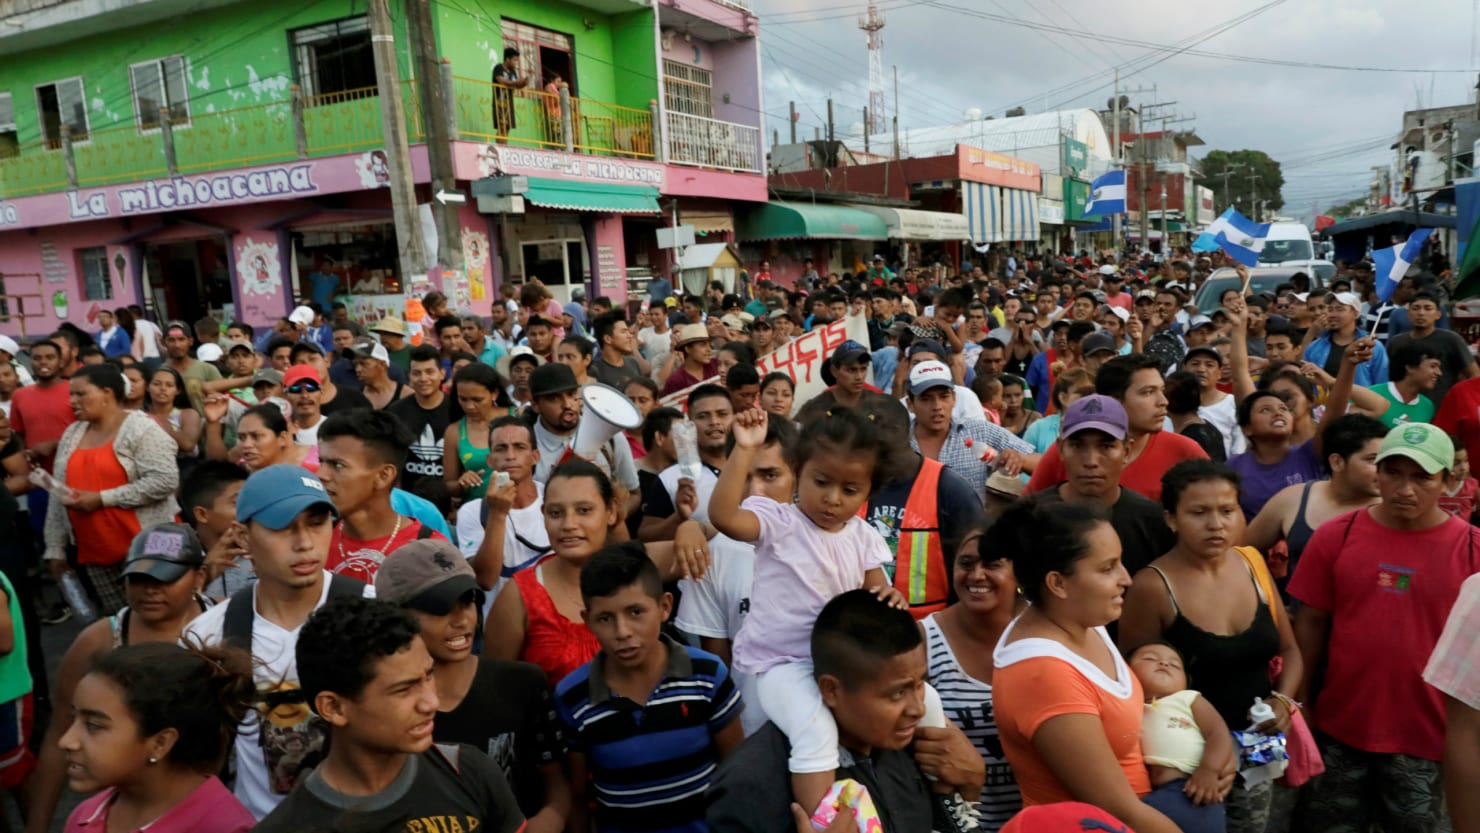 Central Auto Group >> Hundreds of Migrants in Mexico Caravan Want U.S. Asylum